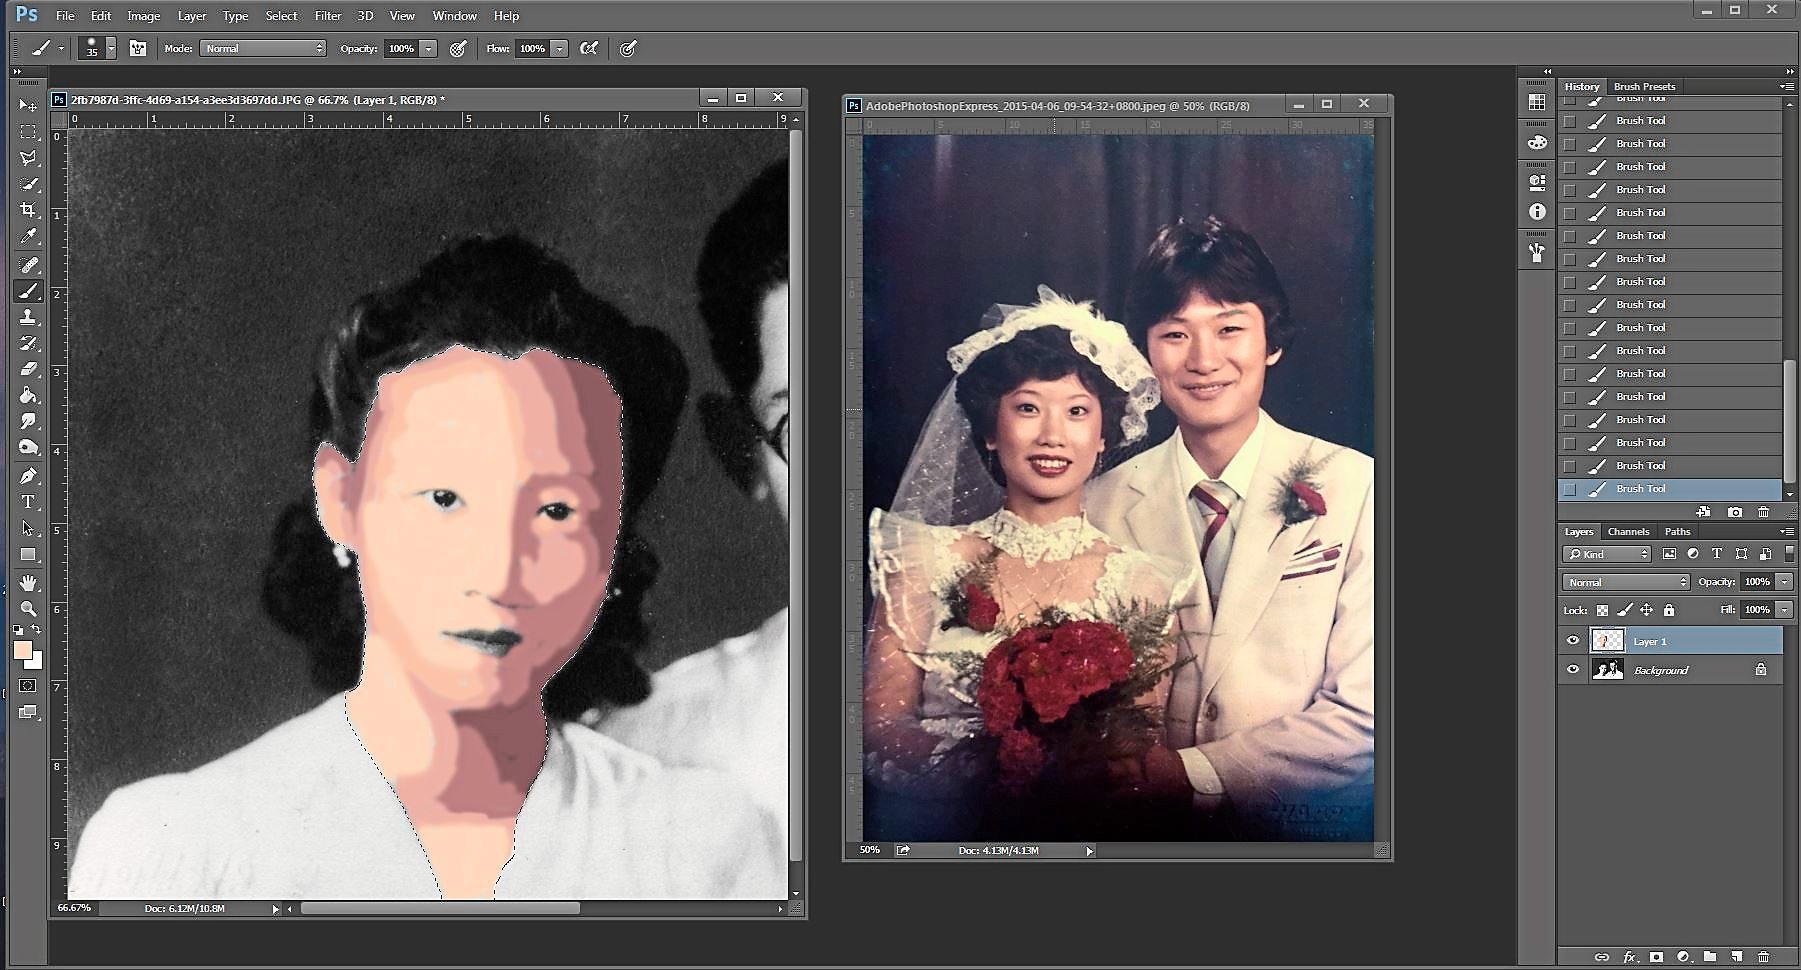 STEP 1: Using the colour photo on the right, we sampled colours from the image and applied it onto a new layer in the monochrome image on the left, applying darker colours in the shadow areas and lighter colours in the brighter areas